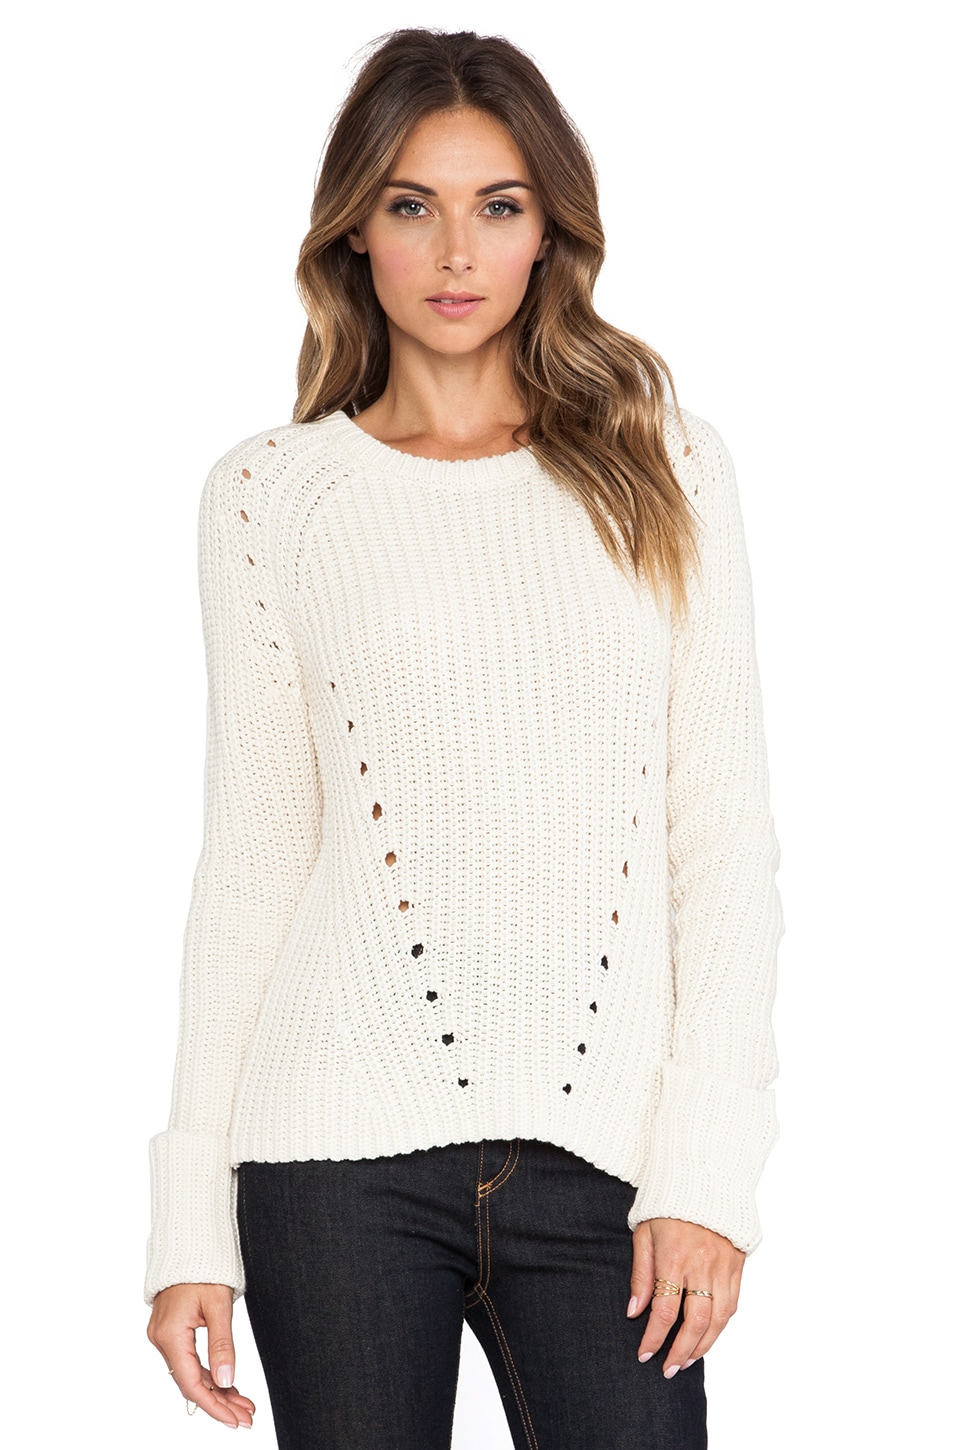 360 Sweater Lucia Sweater in Ivory